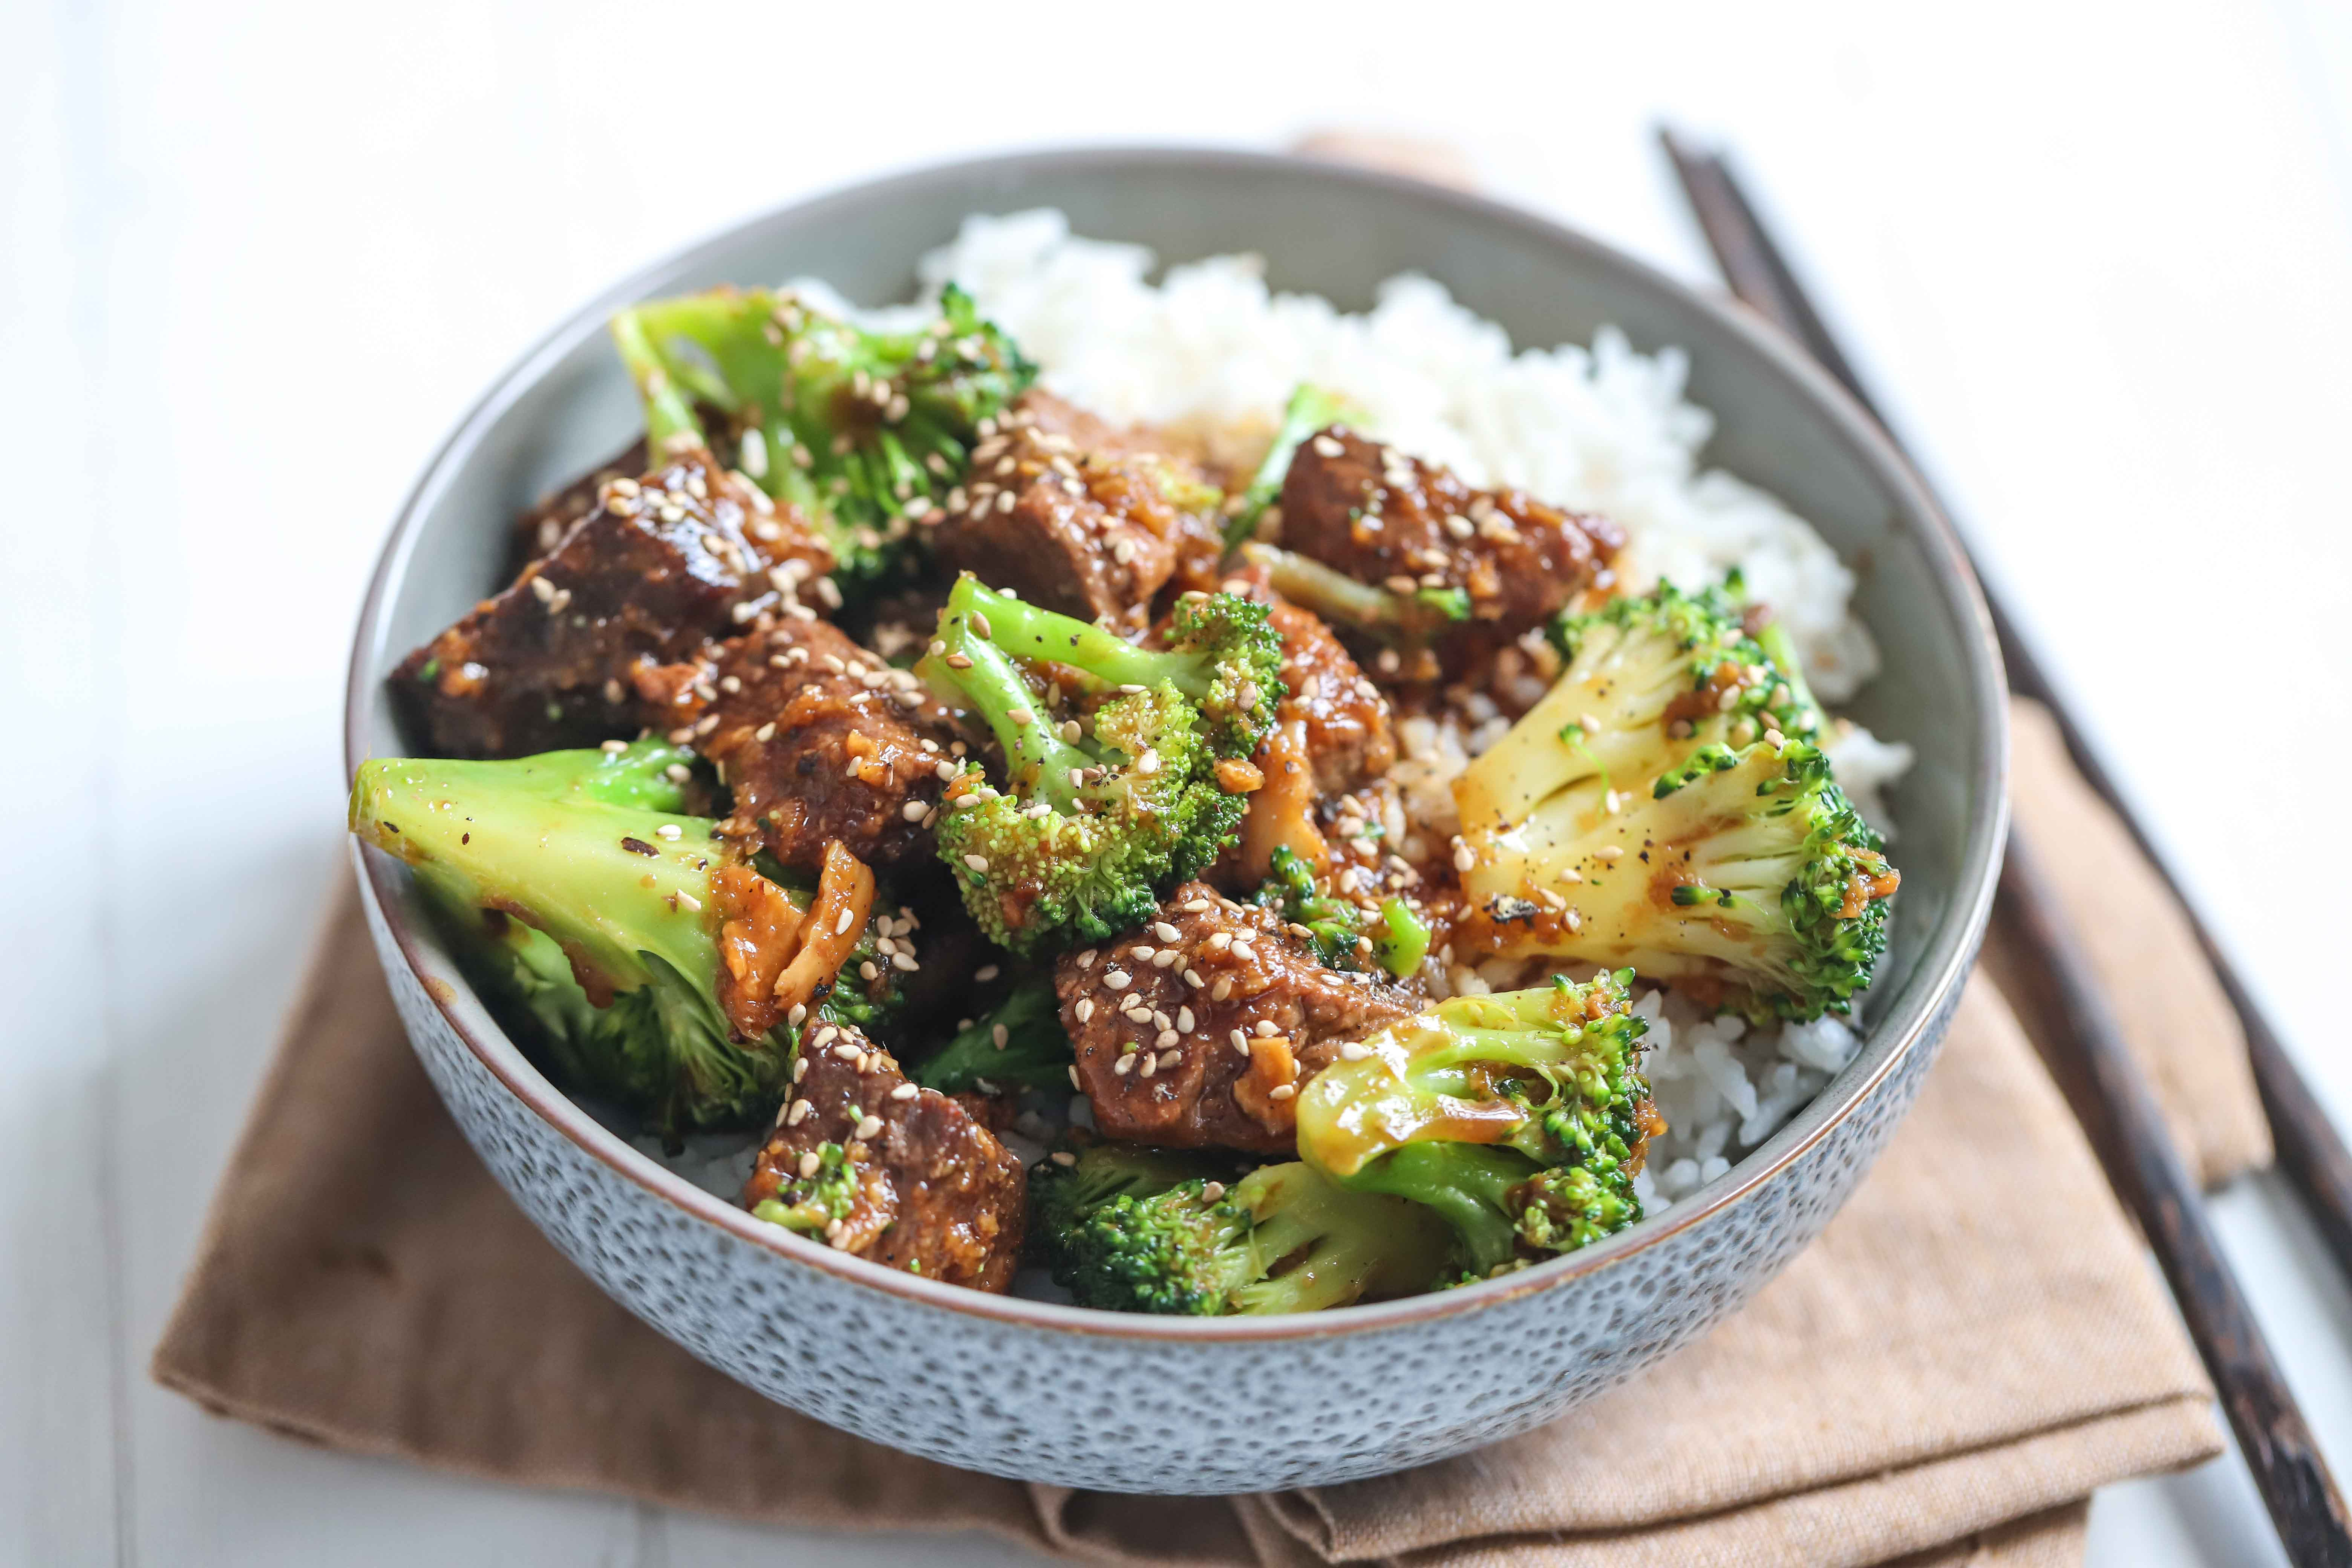 Want a healthy dinner? Try beef and broccoli stir fry